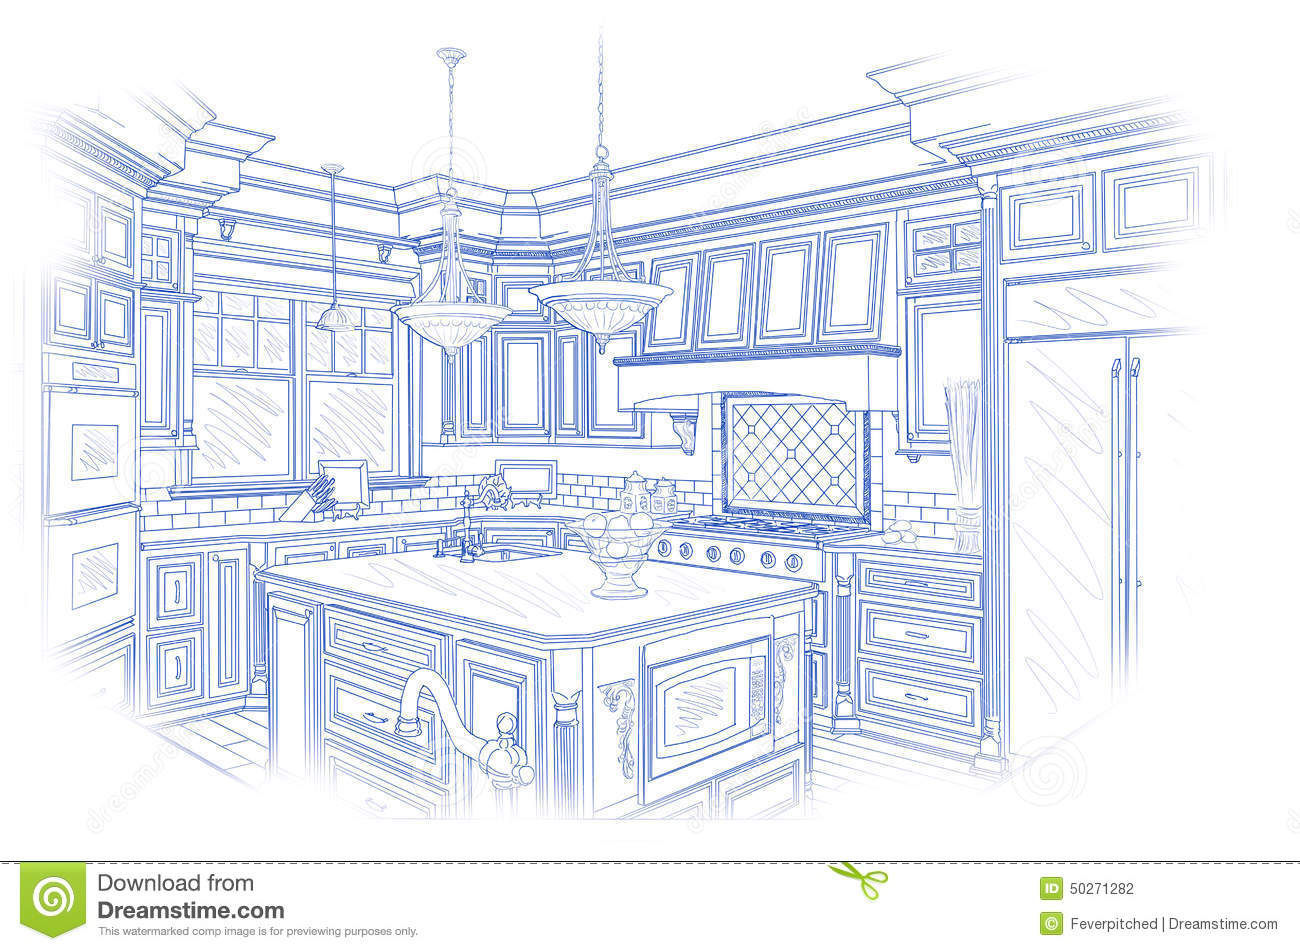 Blueprint custom kitchen design drawing on white stock illustration blueprint custom kitchen design drawing on white malvernweather Gallery